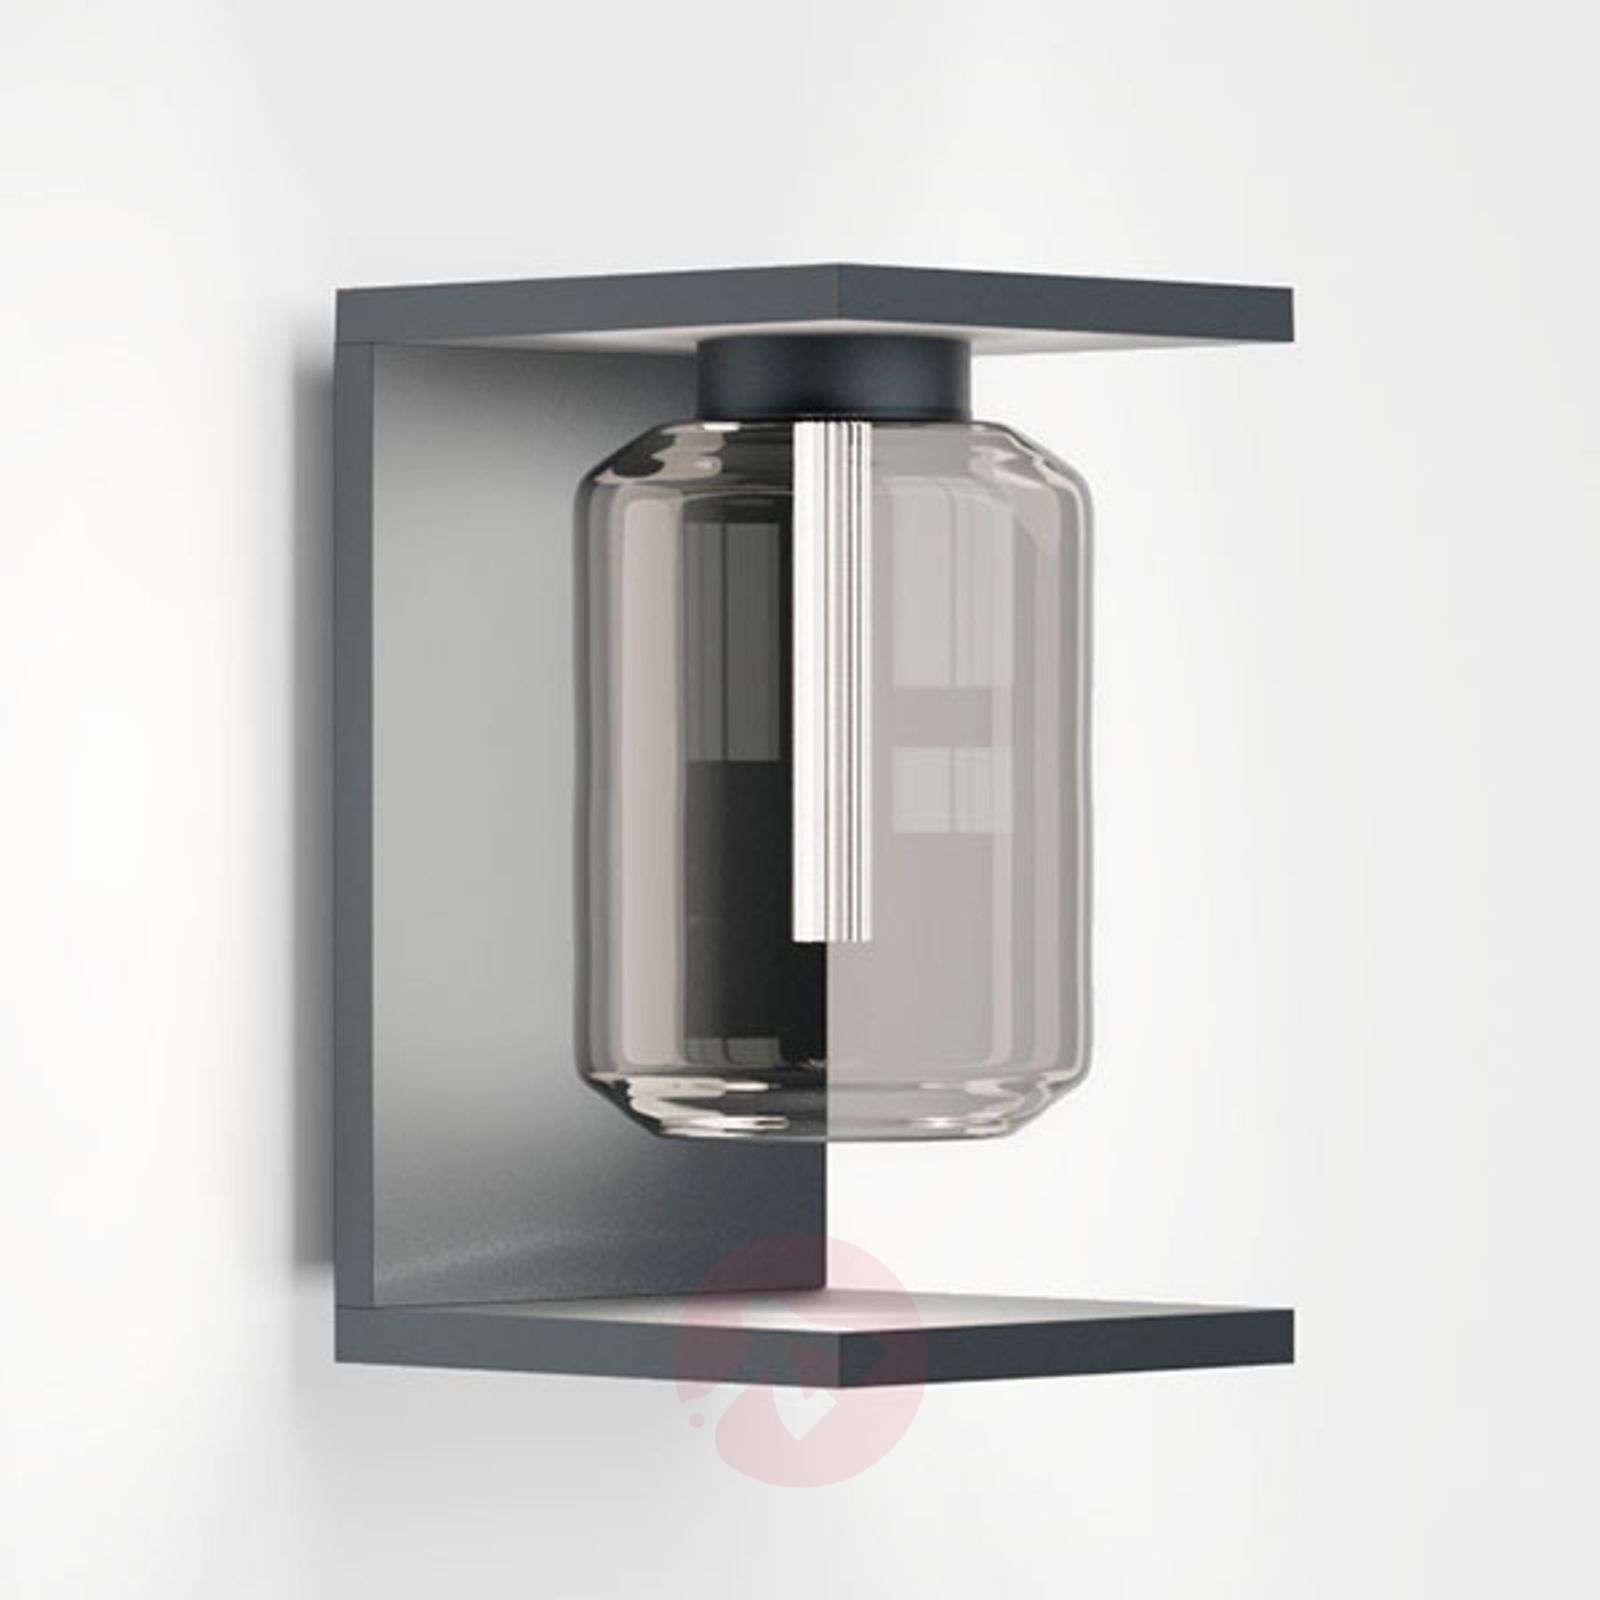 IP44.de Dia LED outdoor wall light-5036038-01